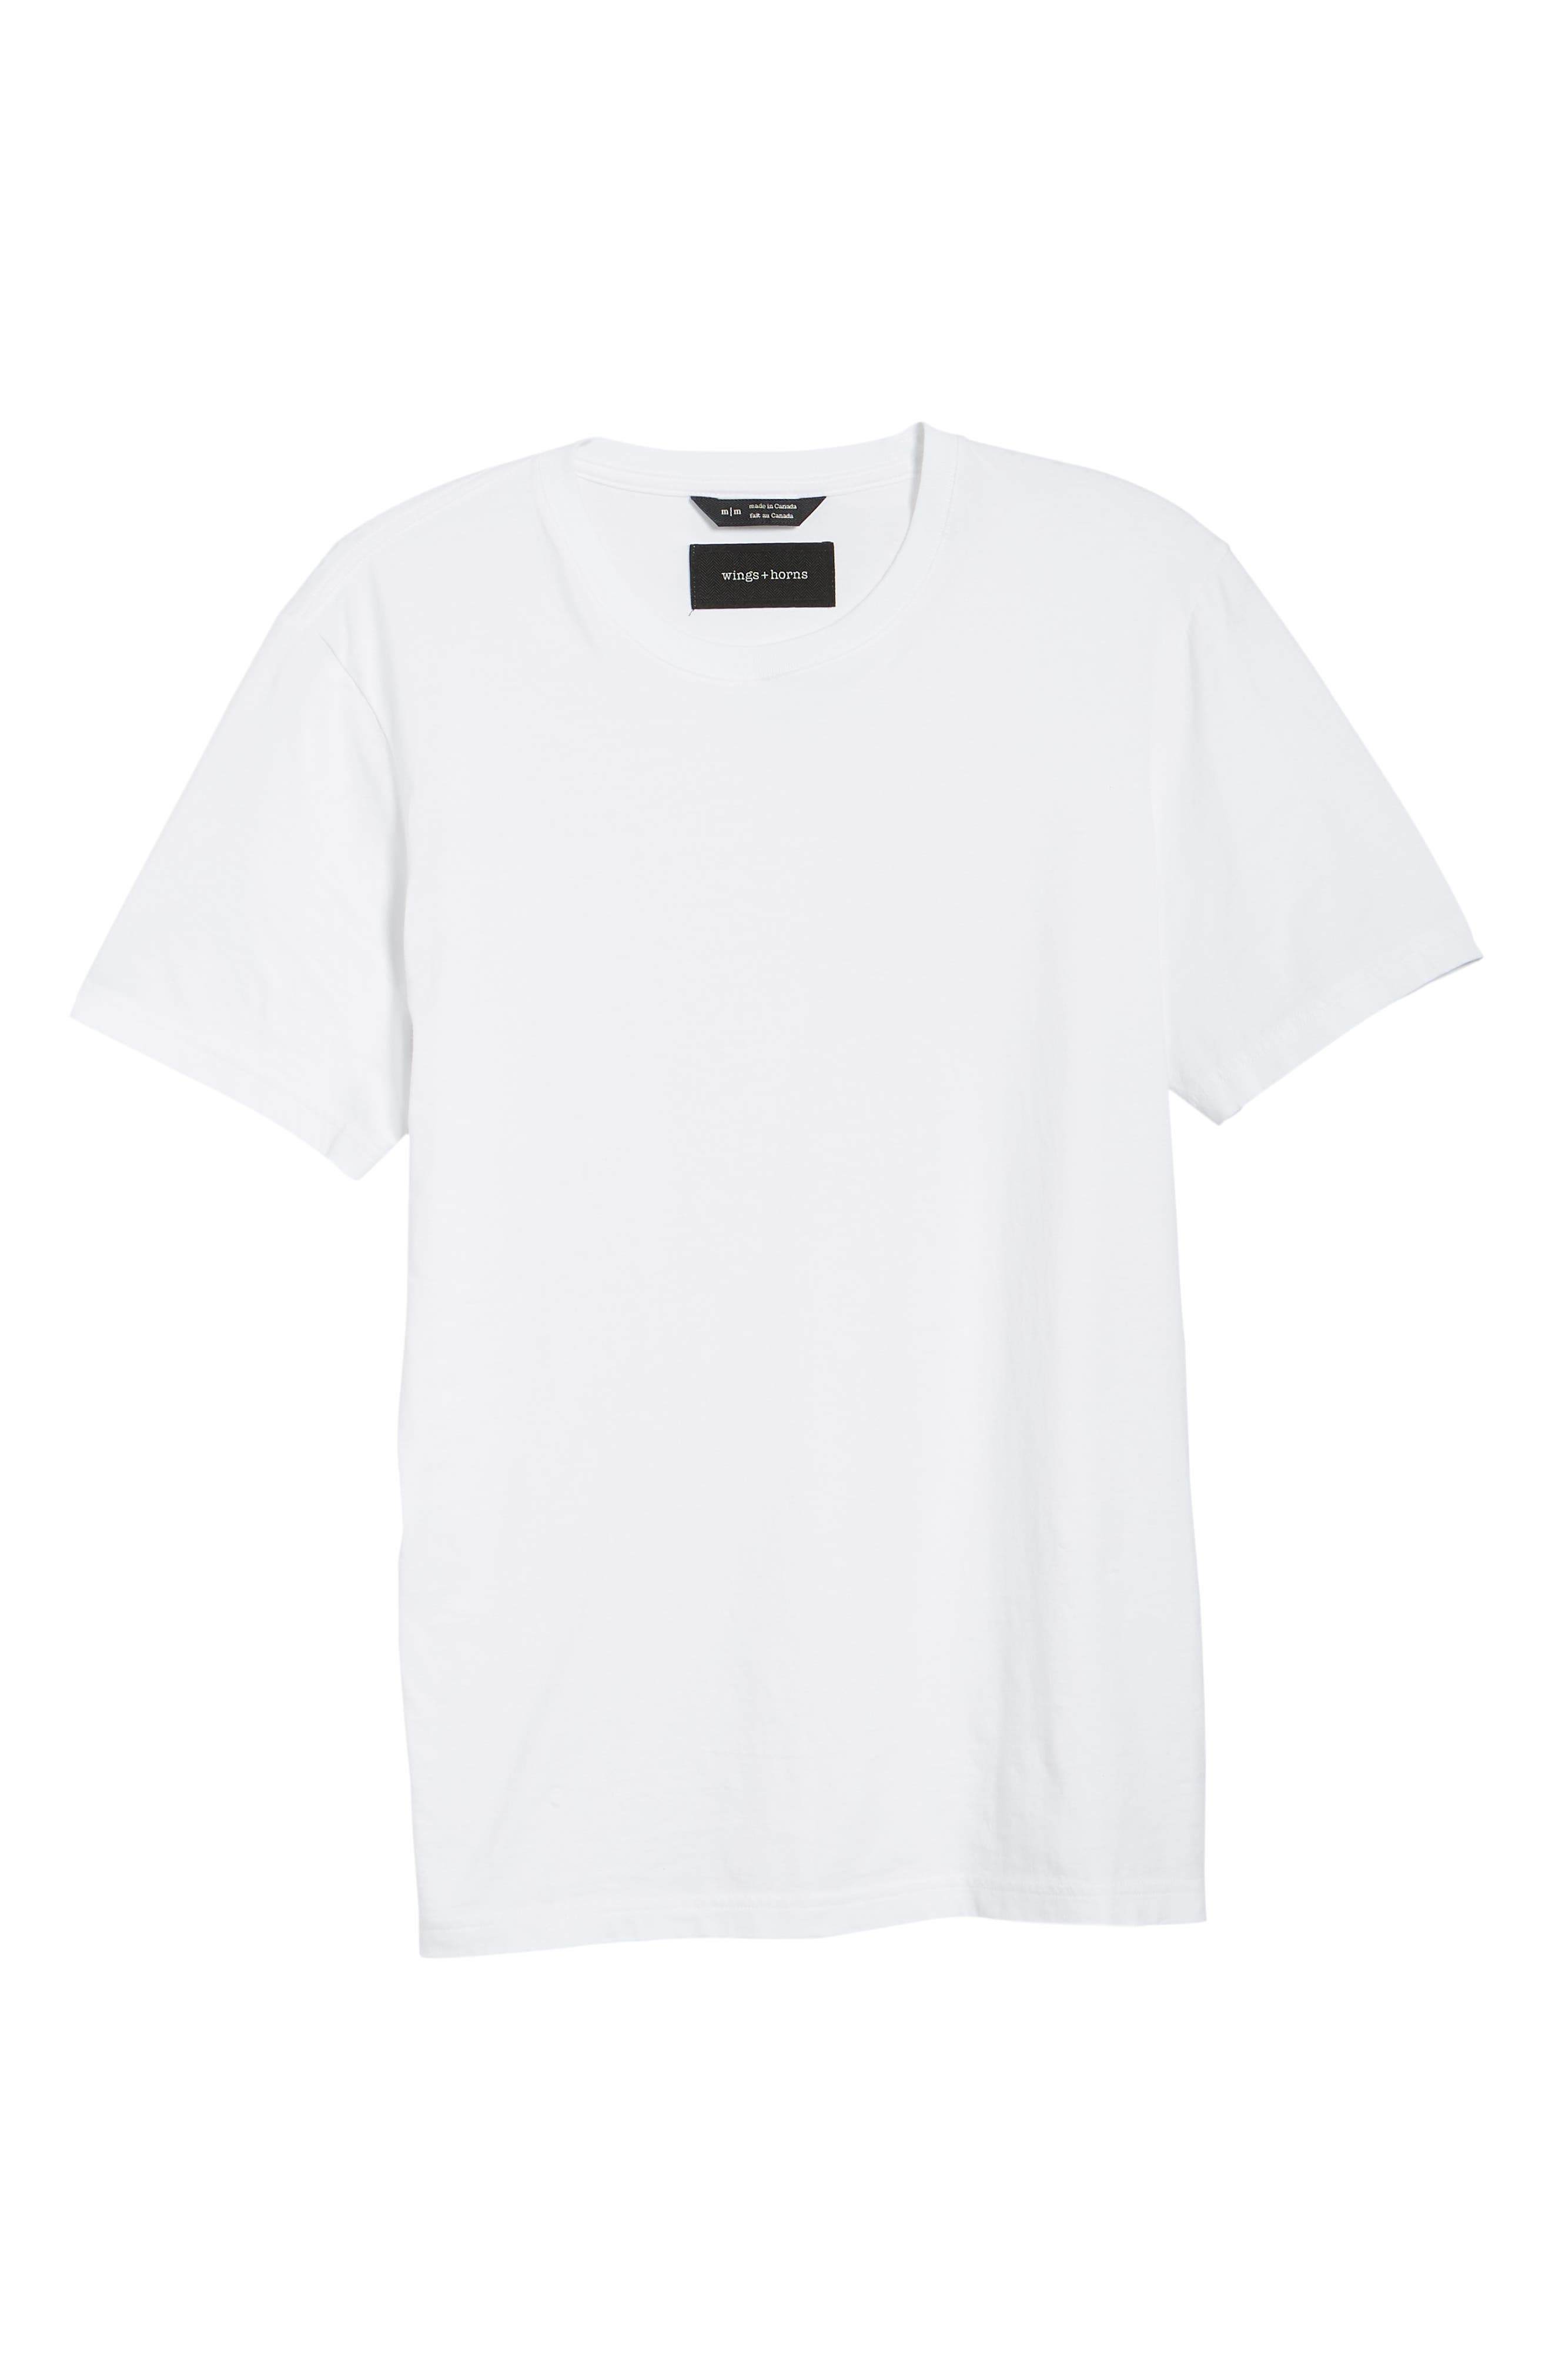 WINGS + HORNS, Short Sleeve Crewneck T-Shirt, Alternate thumbnail 6, color, WHITE